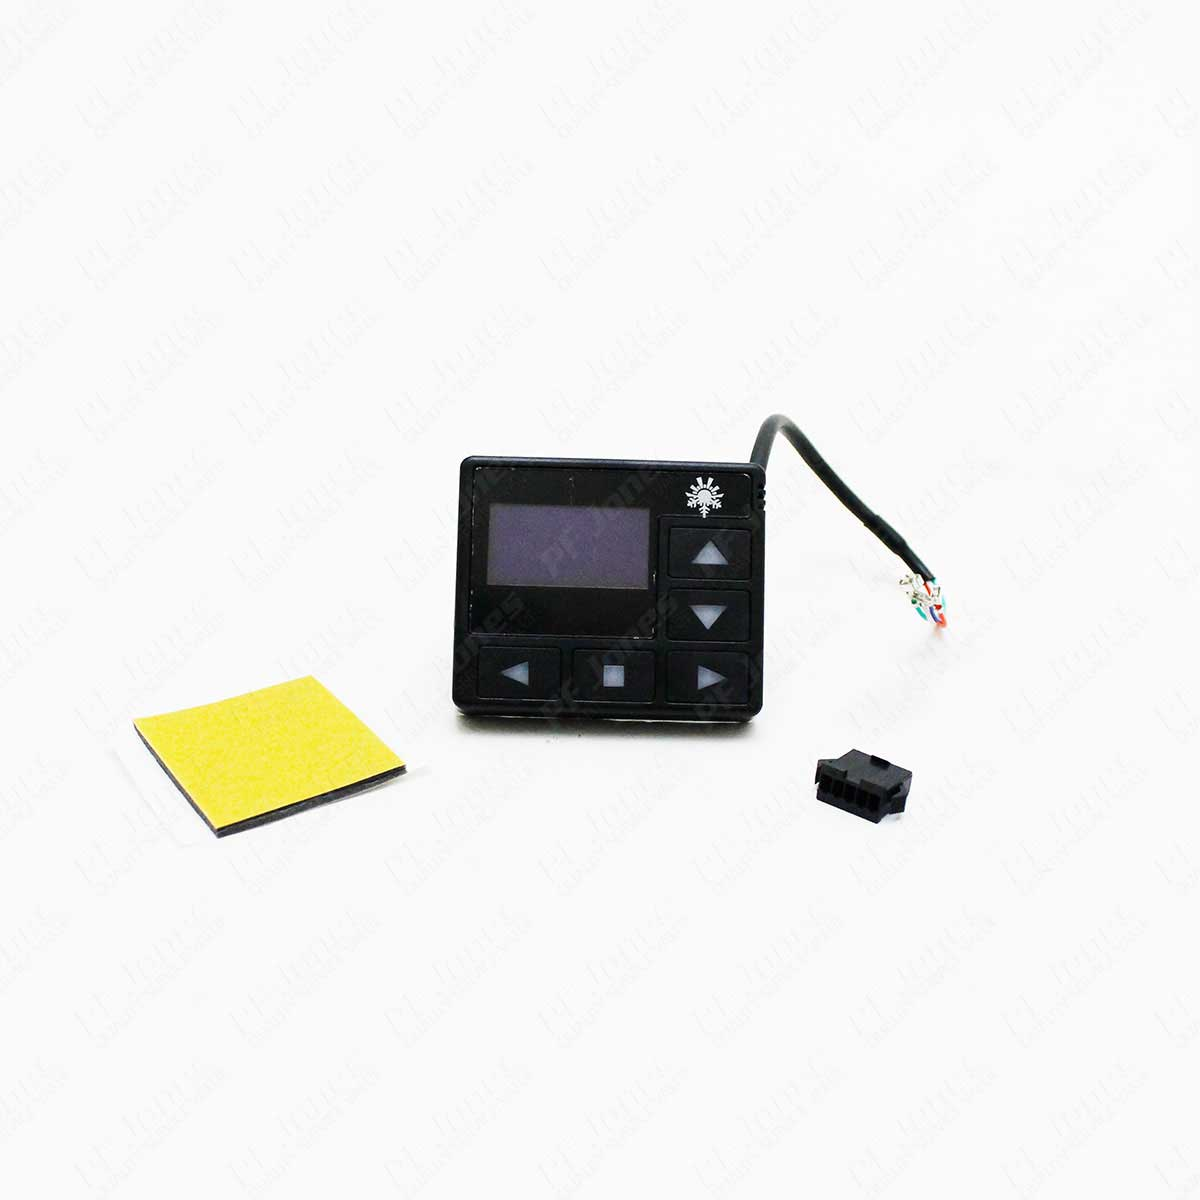 Planar - OLED 7 Day Timer Control Panel PU-27